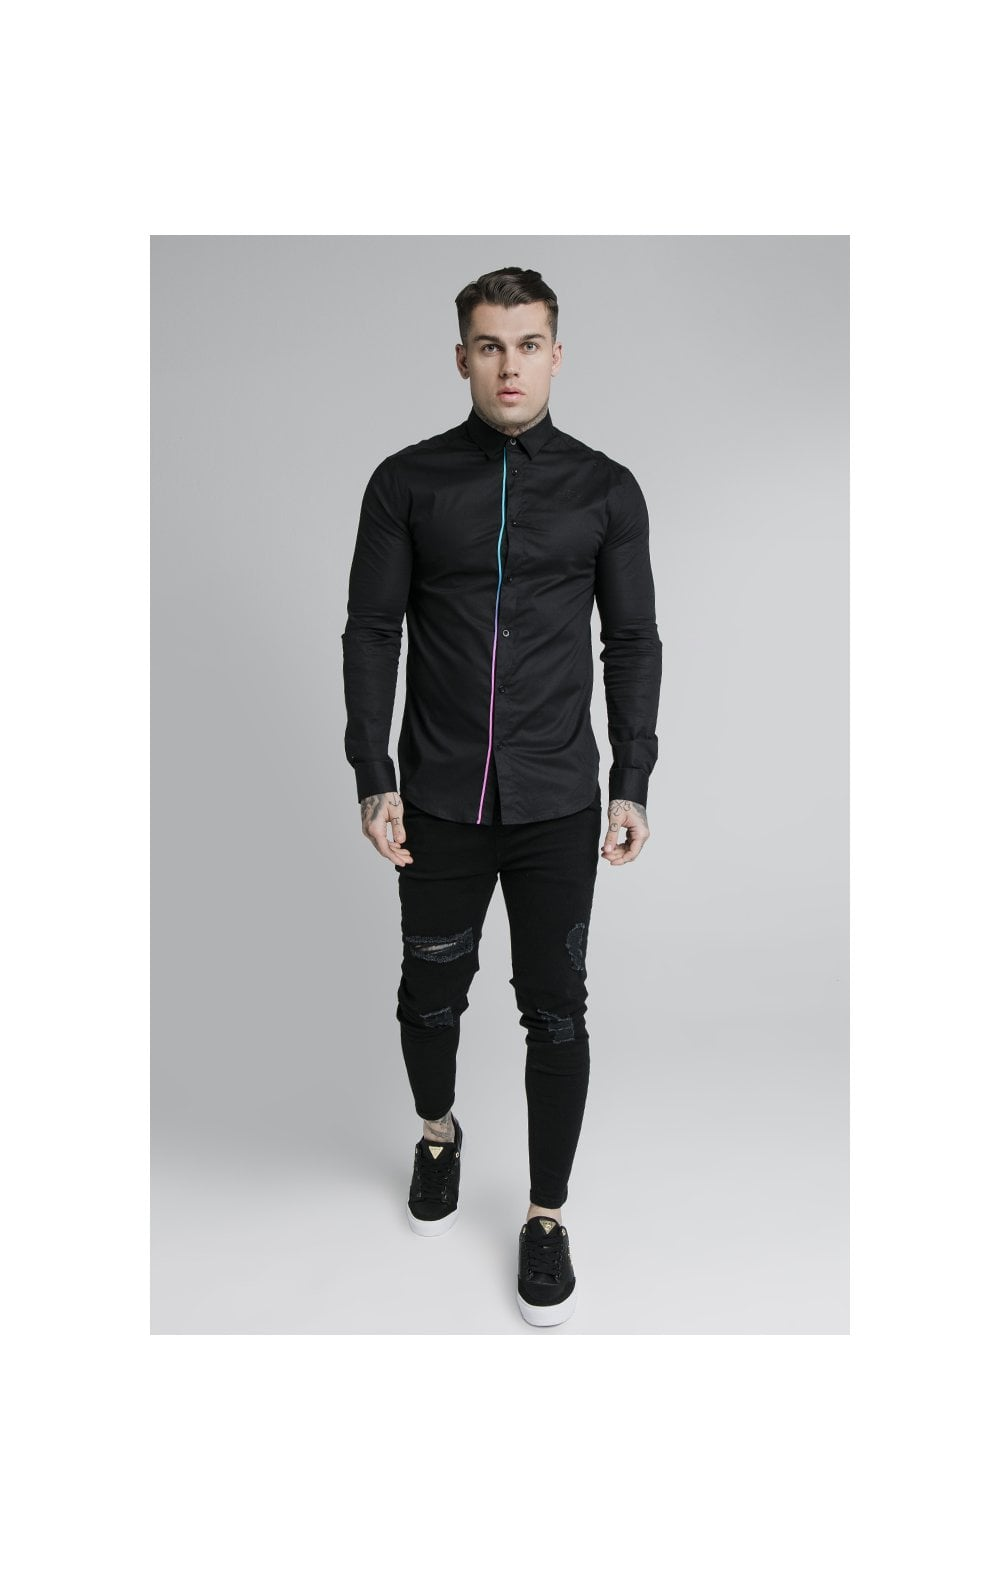 Load image into Gallery viewer, SikSilk L/S Fade Piping Shirt - Black & Neon Fade (3)